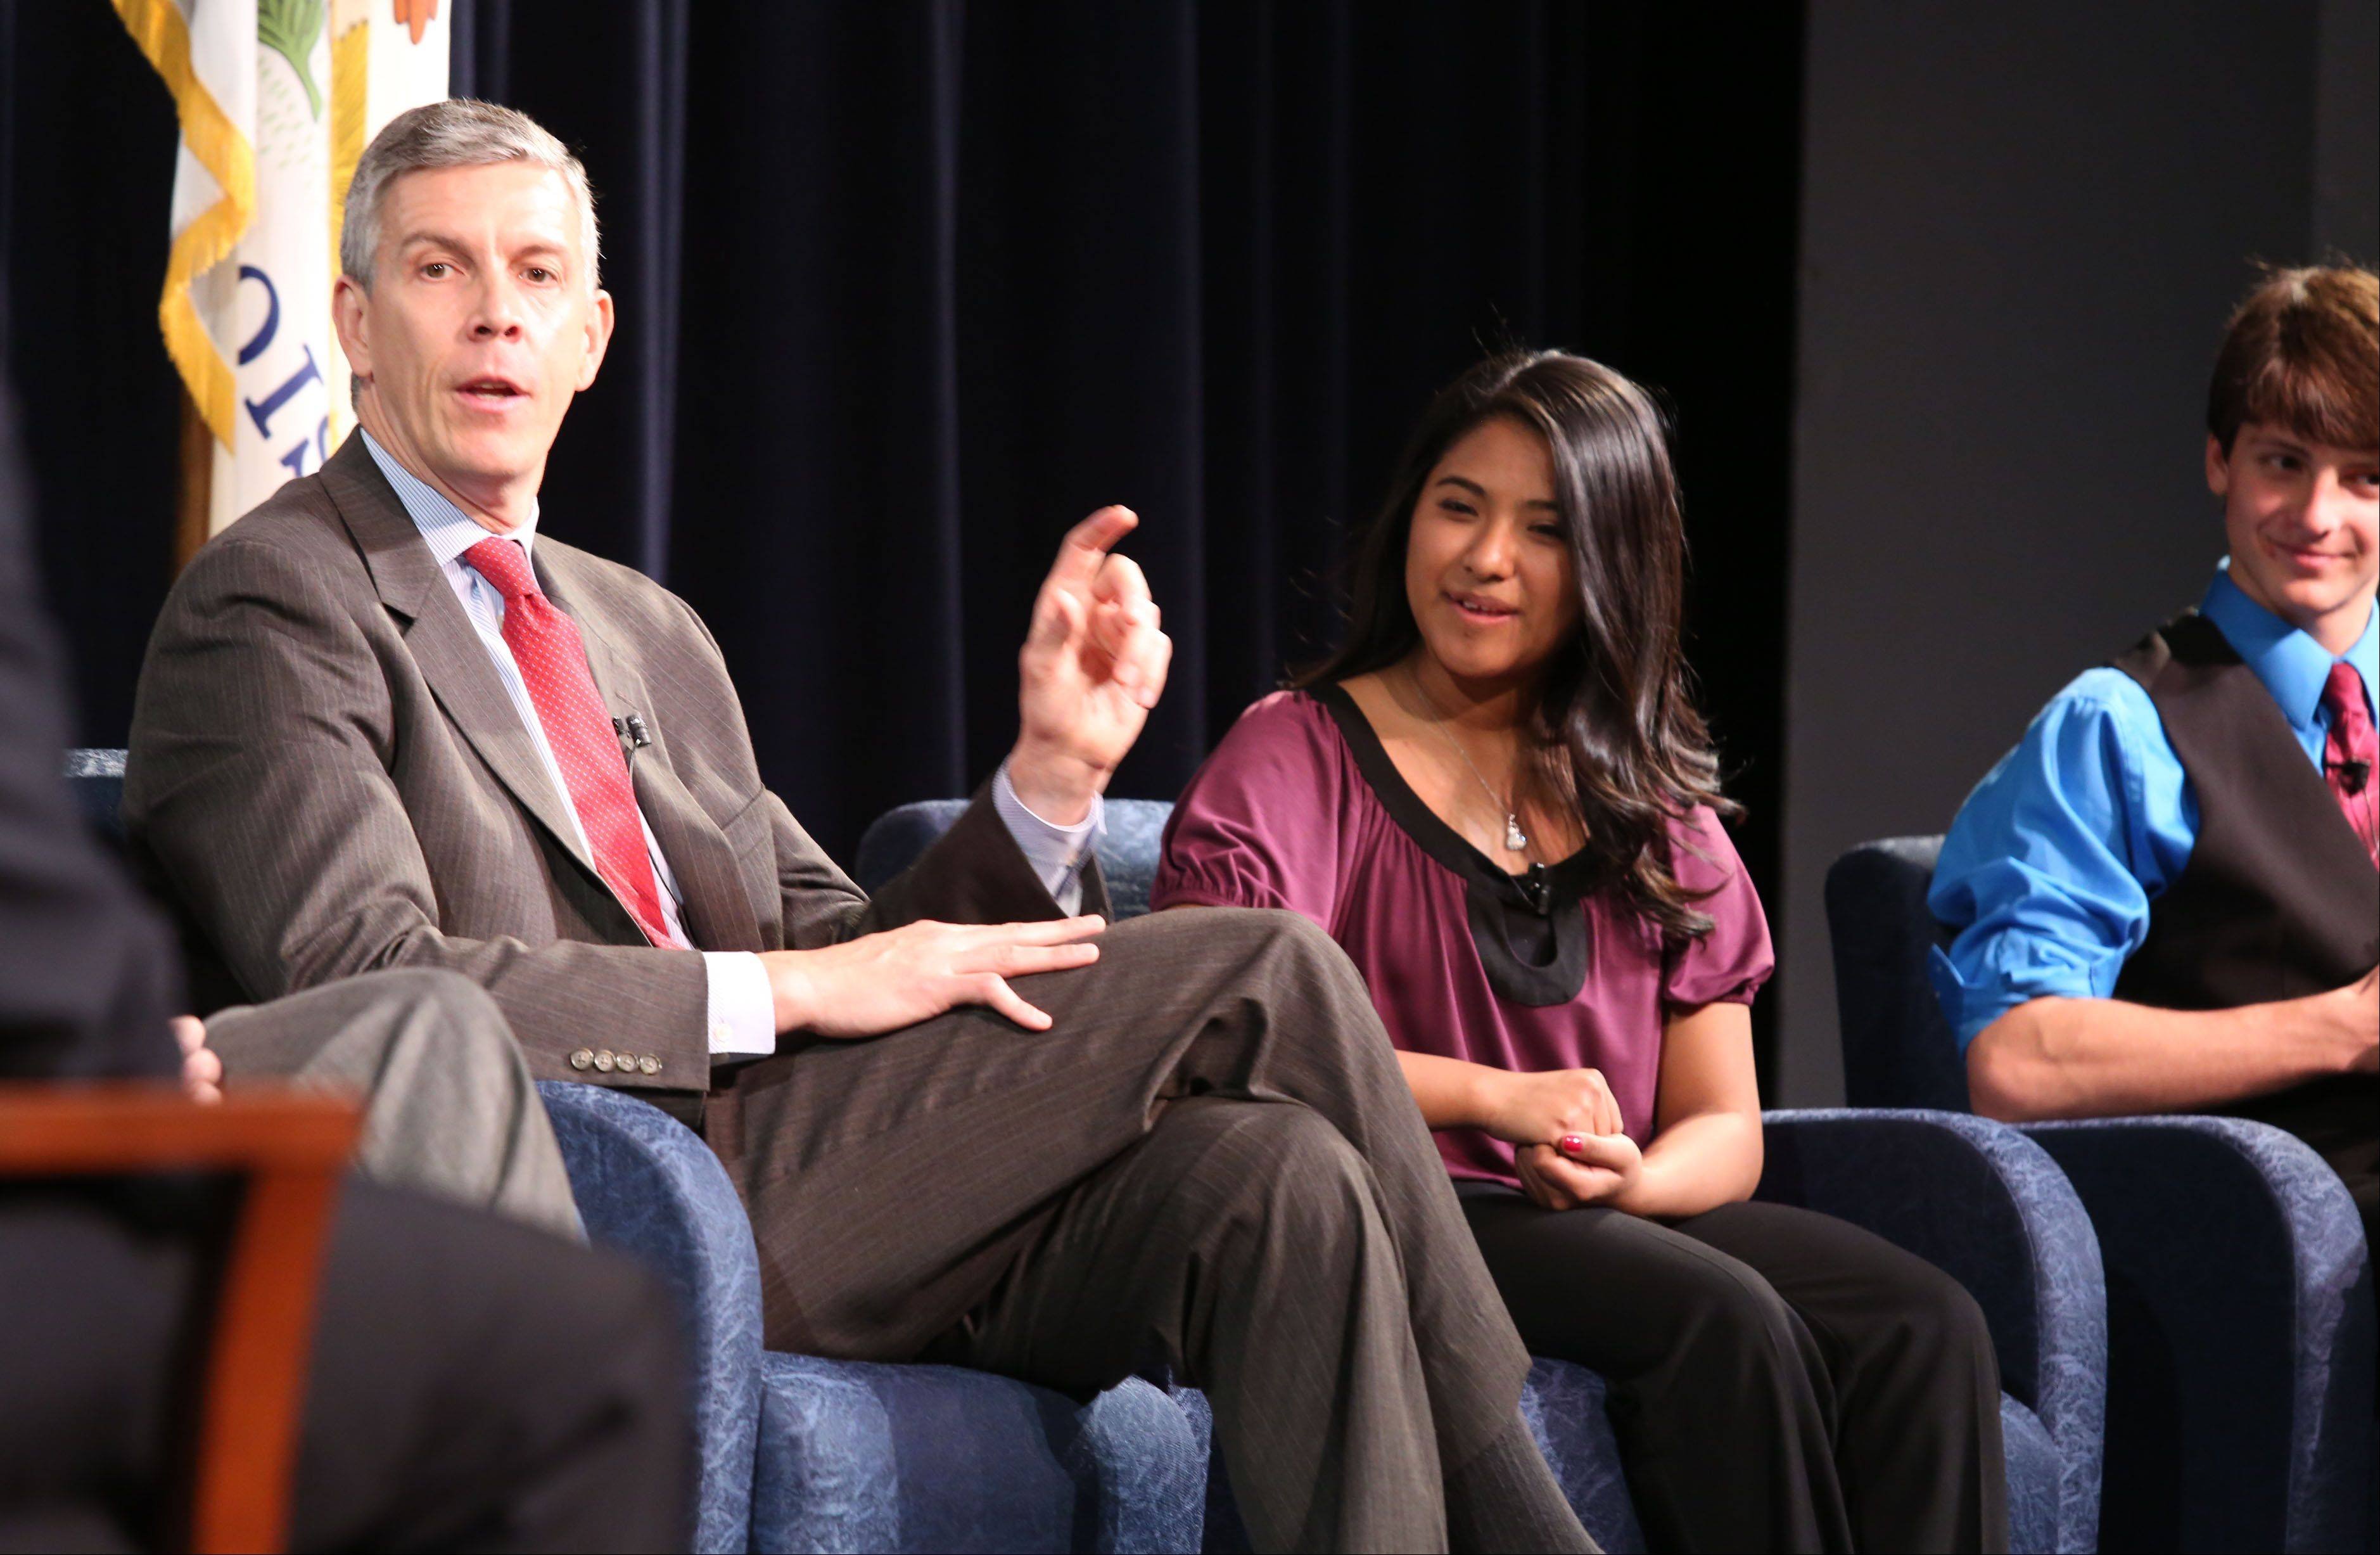 Secretary of Education Arne Duncan speaks during at a panel discussion on STEM education with Wheeling High School seniors Venessa Reyes and Nicholas Gross.